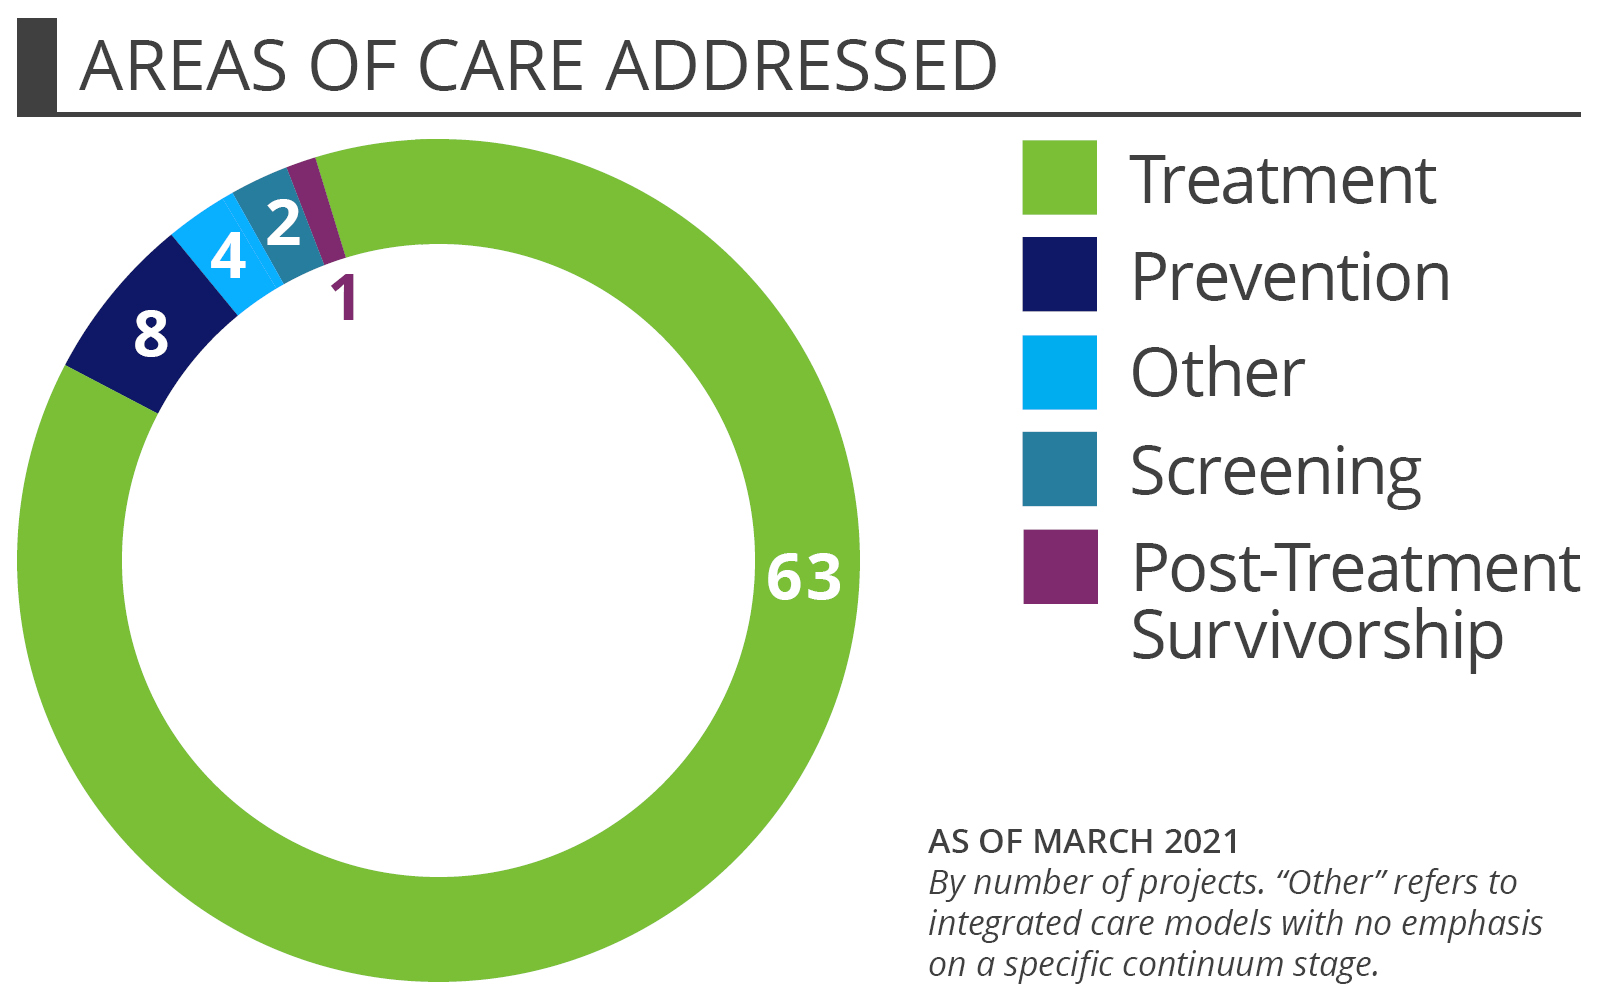 Community Health Workers - Areas of Care Addressed